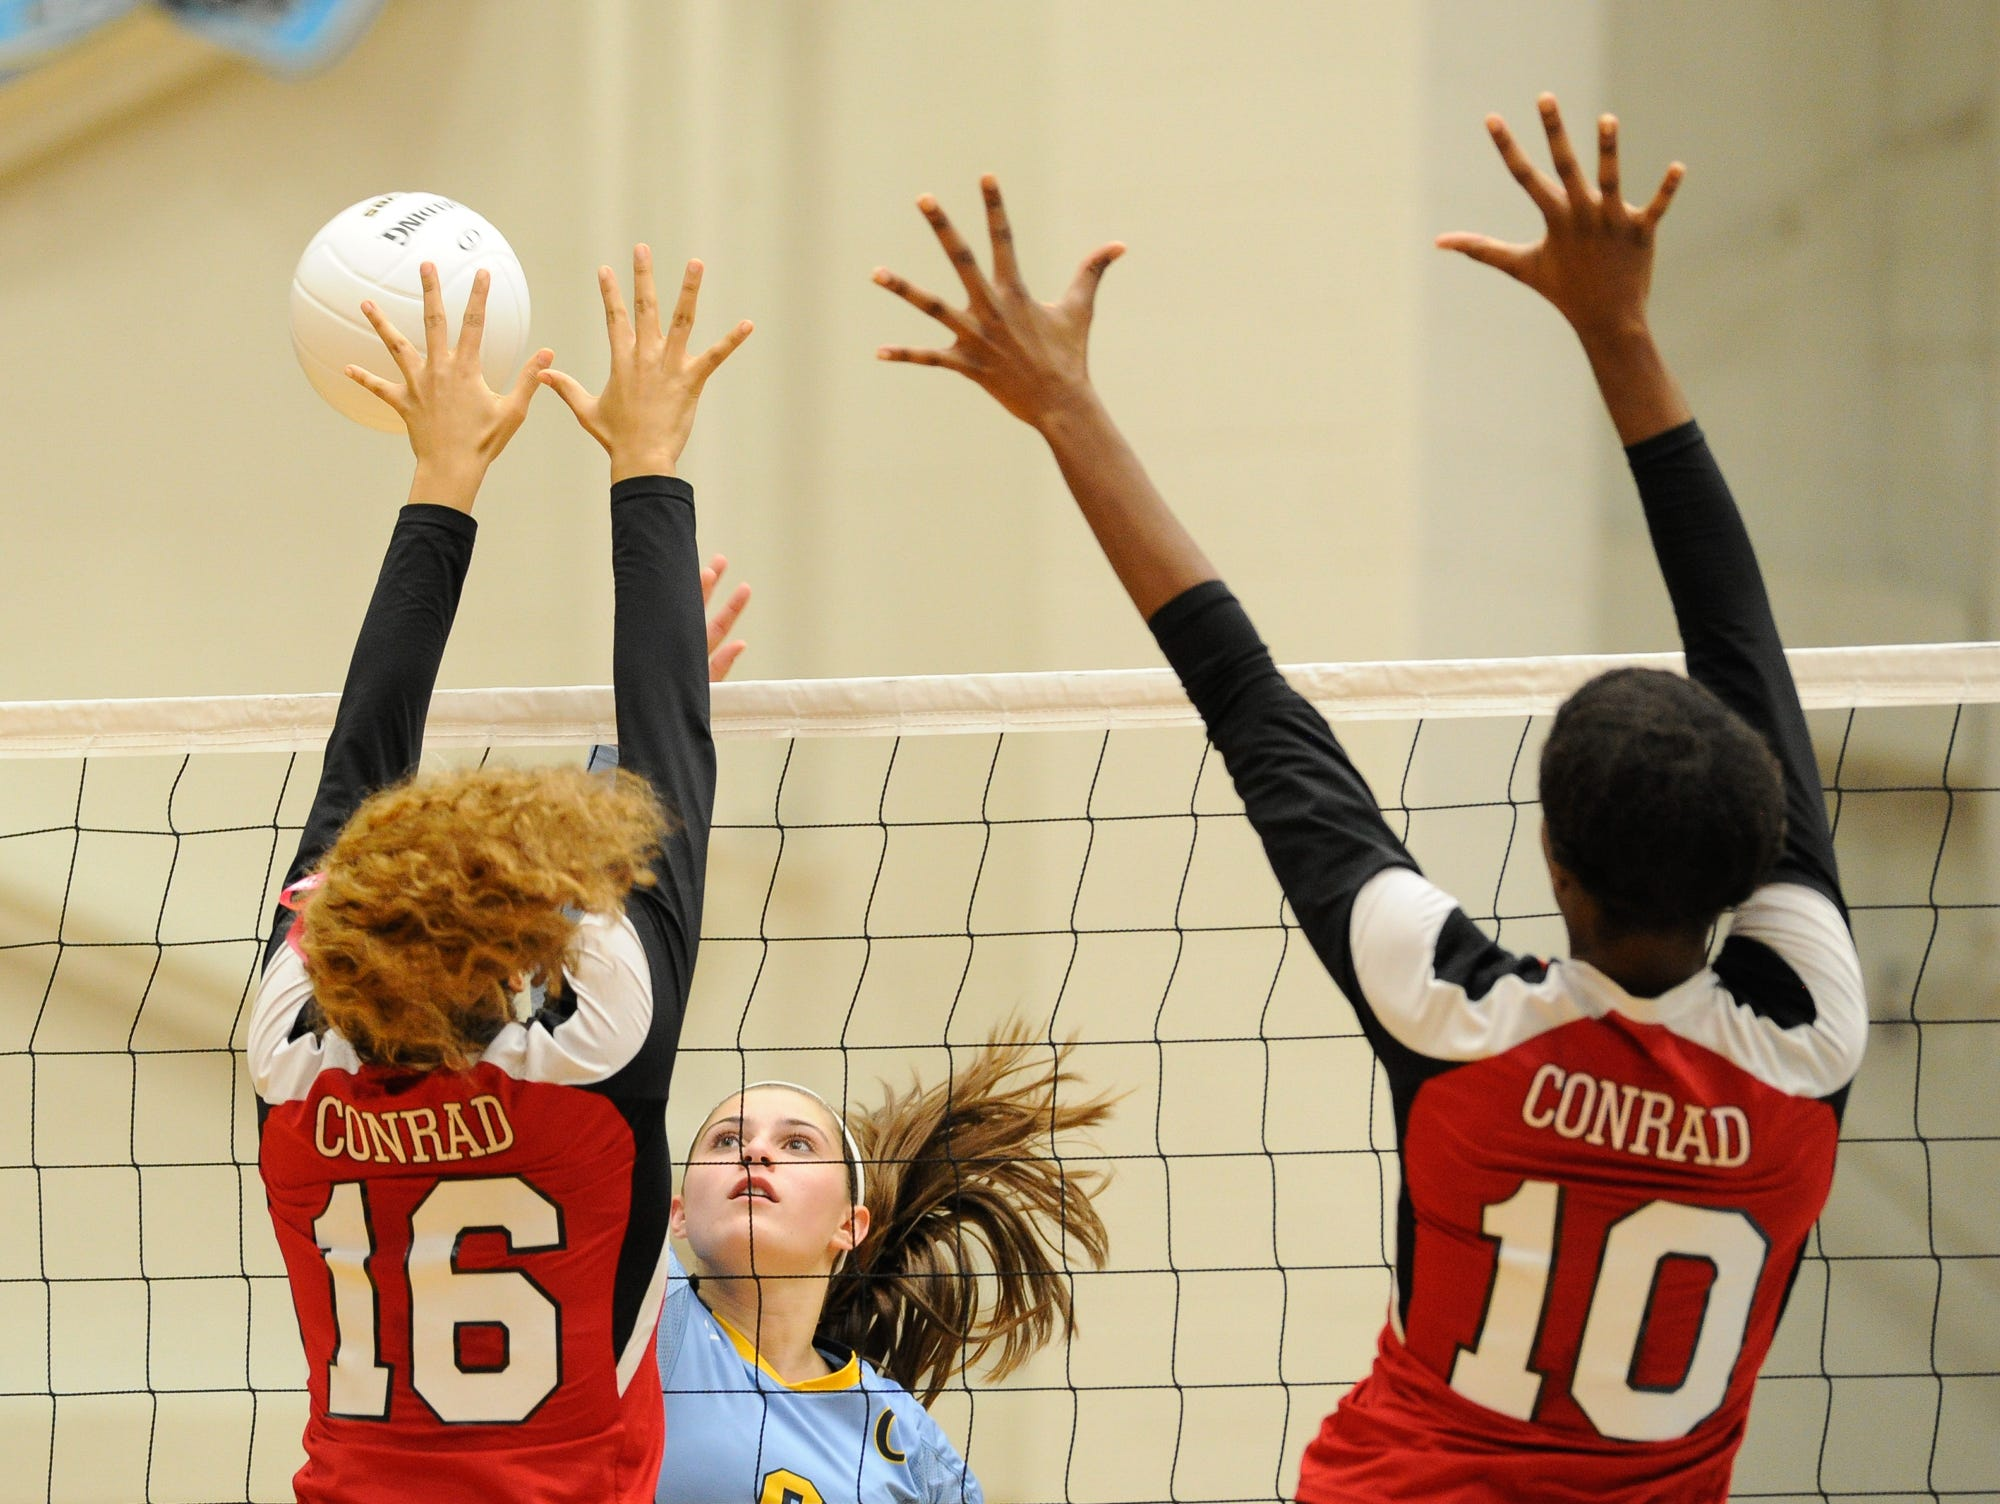 Cape's #6 Alison Palmer with a spike in the second game against Conrad Thursday night at Cape Henlopen High School.